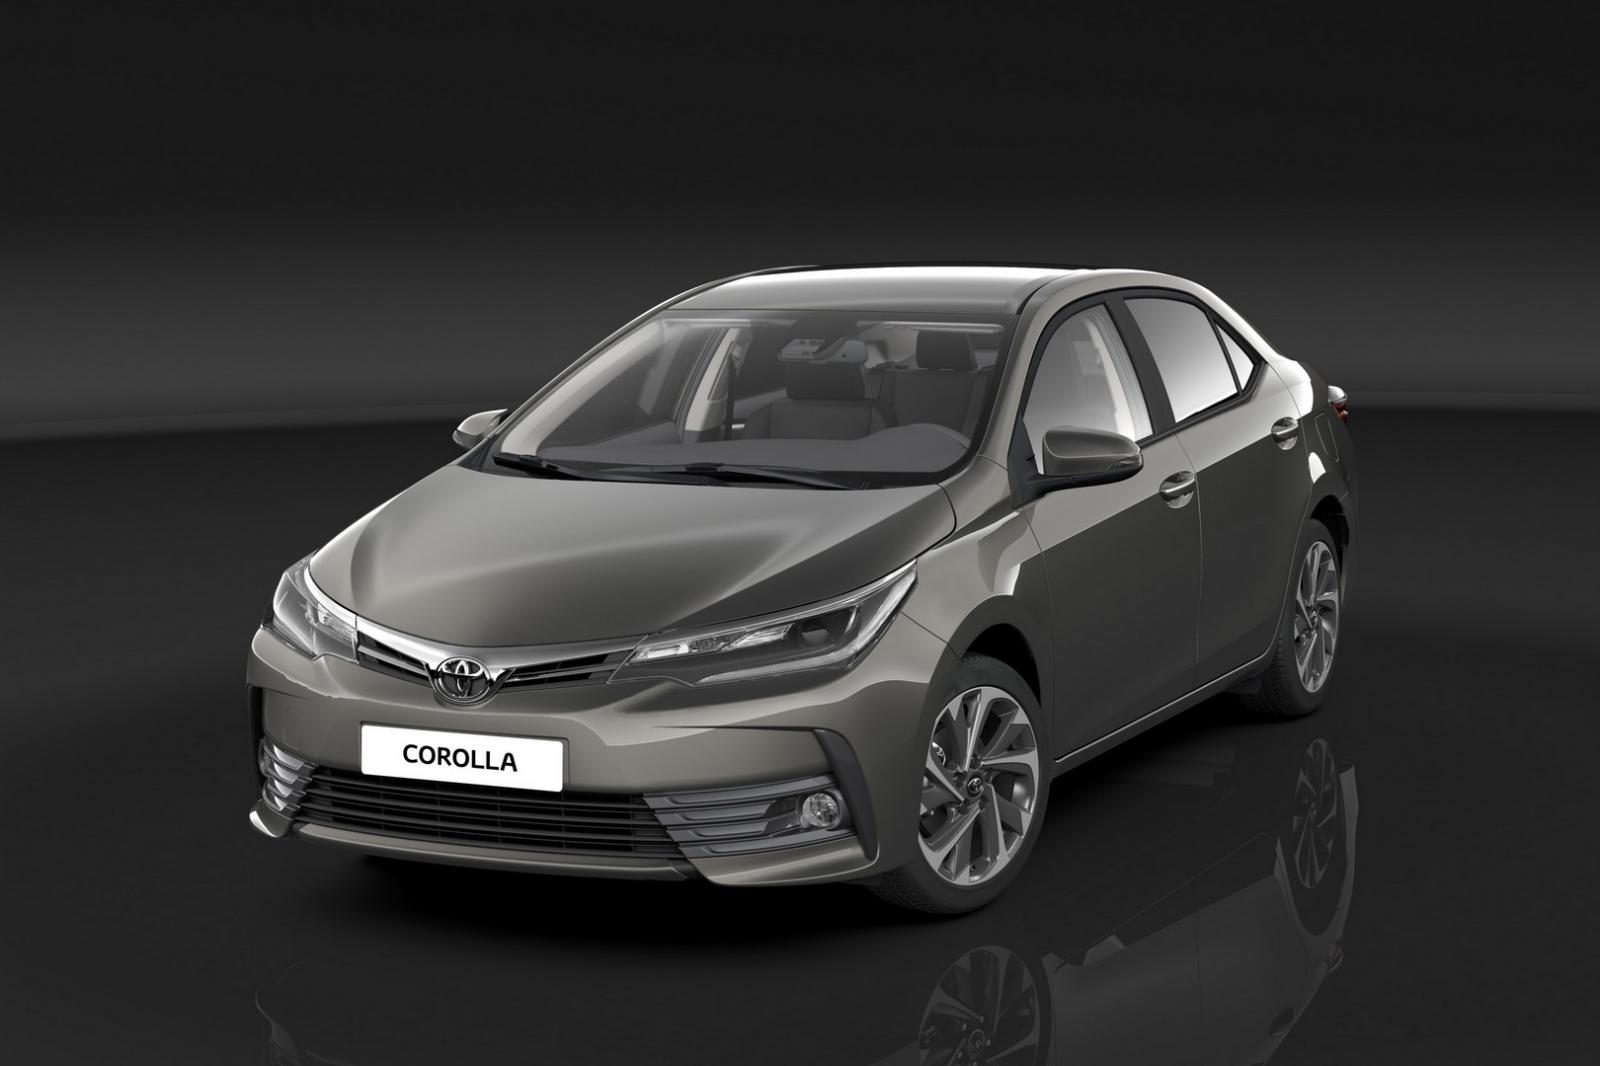 2016 toyota corolla facelift for european market revealed. Black Bedroom Furniture Sets. Home Design Ideas